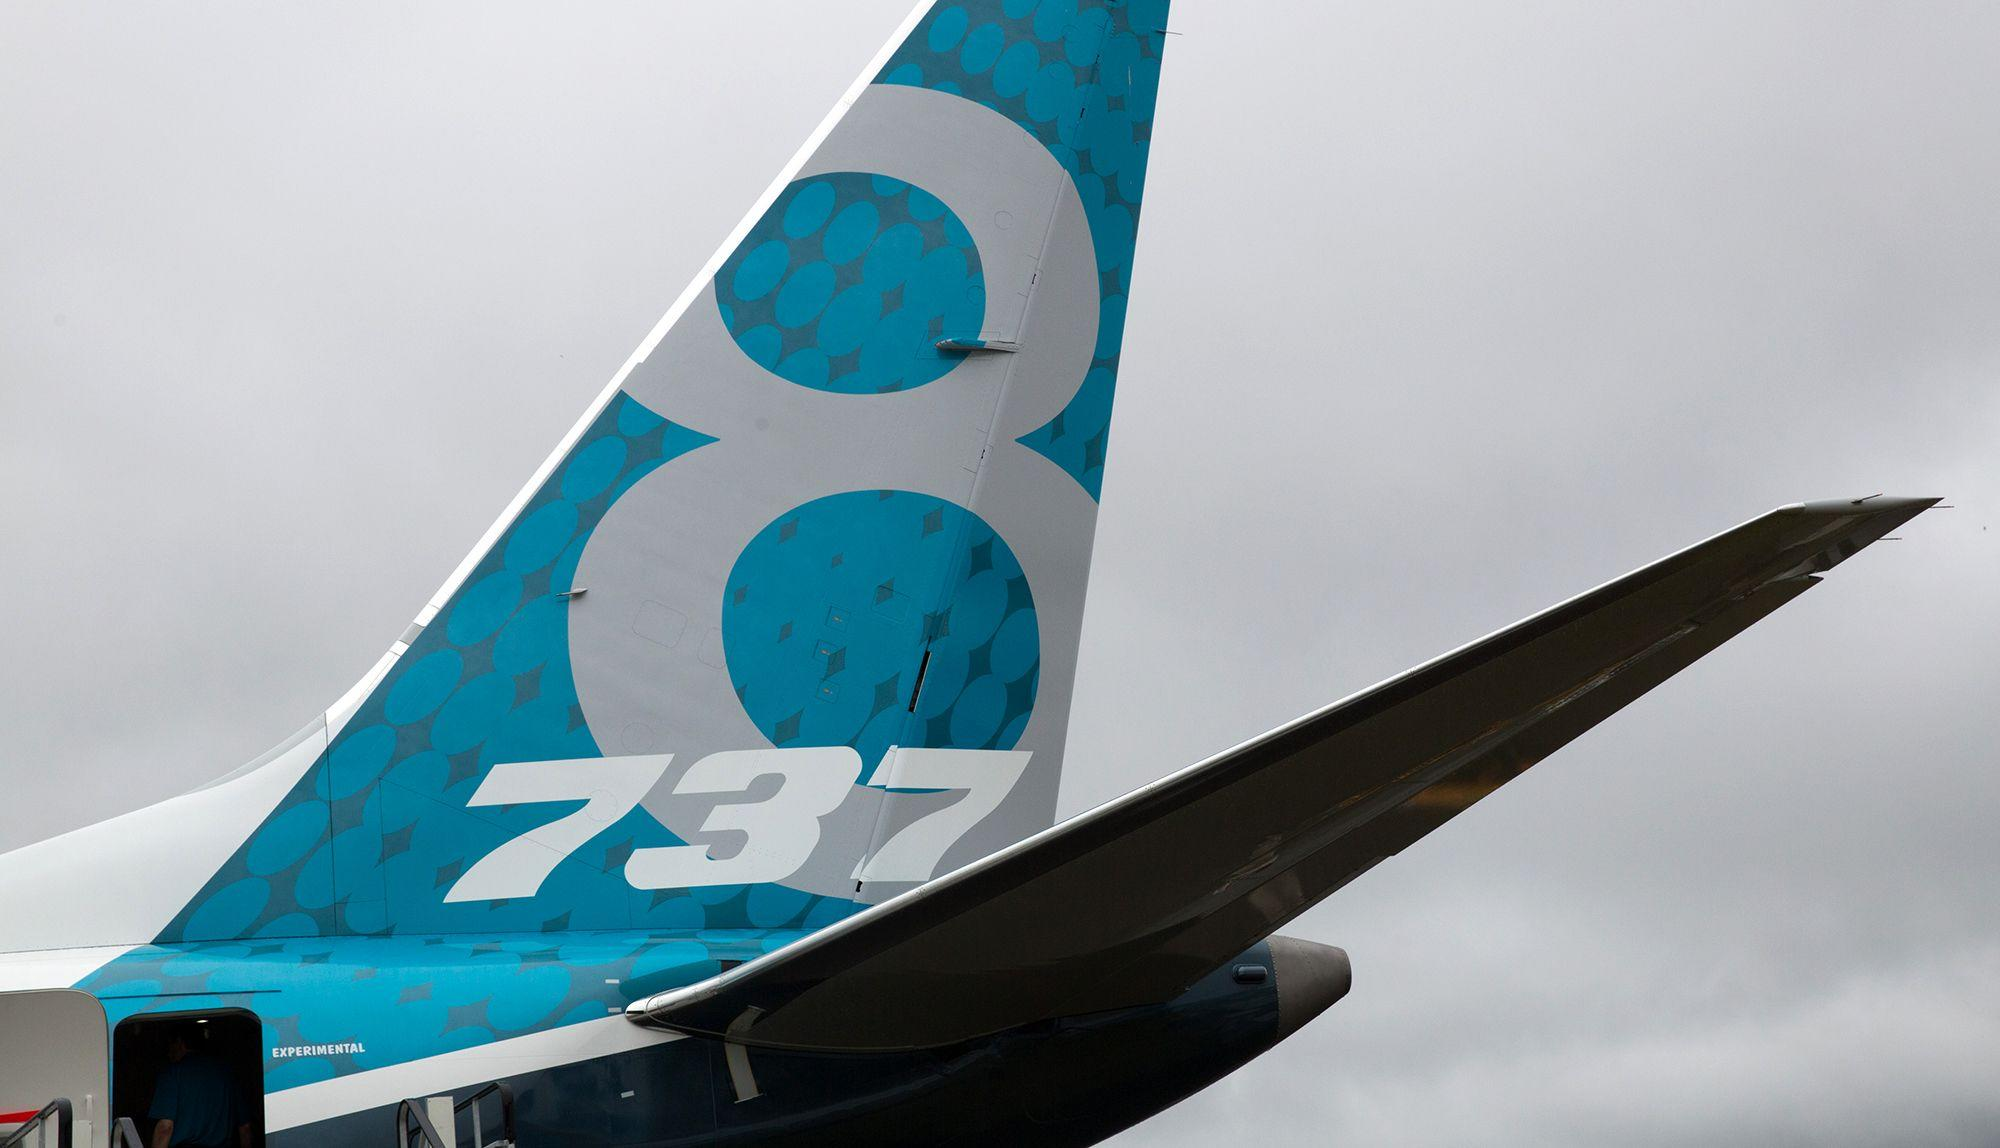 Boeing CEO admits mistakes were made in 737 MAX air safety software